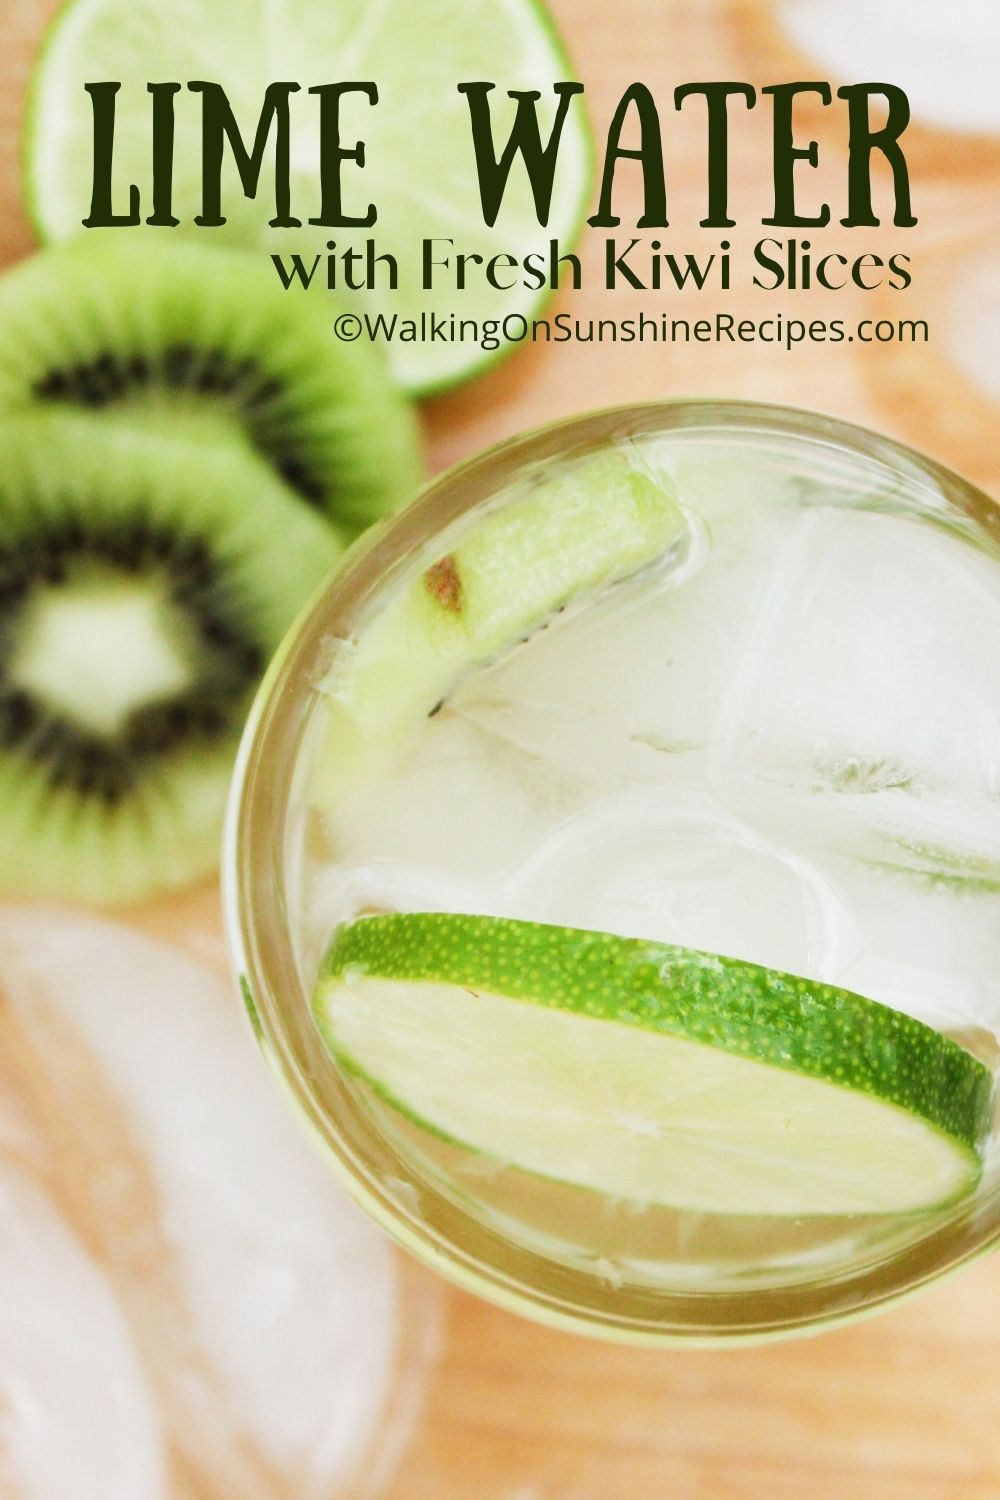 lime water in mason jar with kiwi slices.